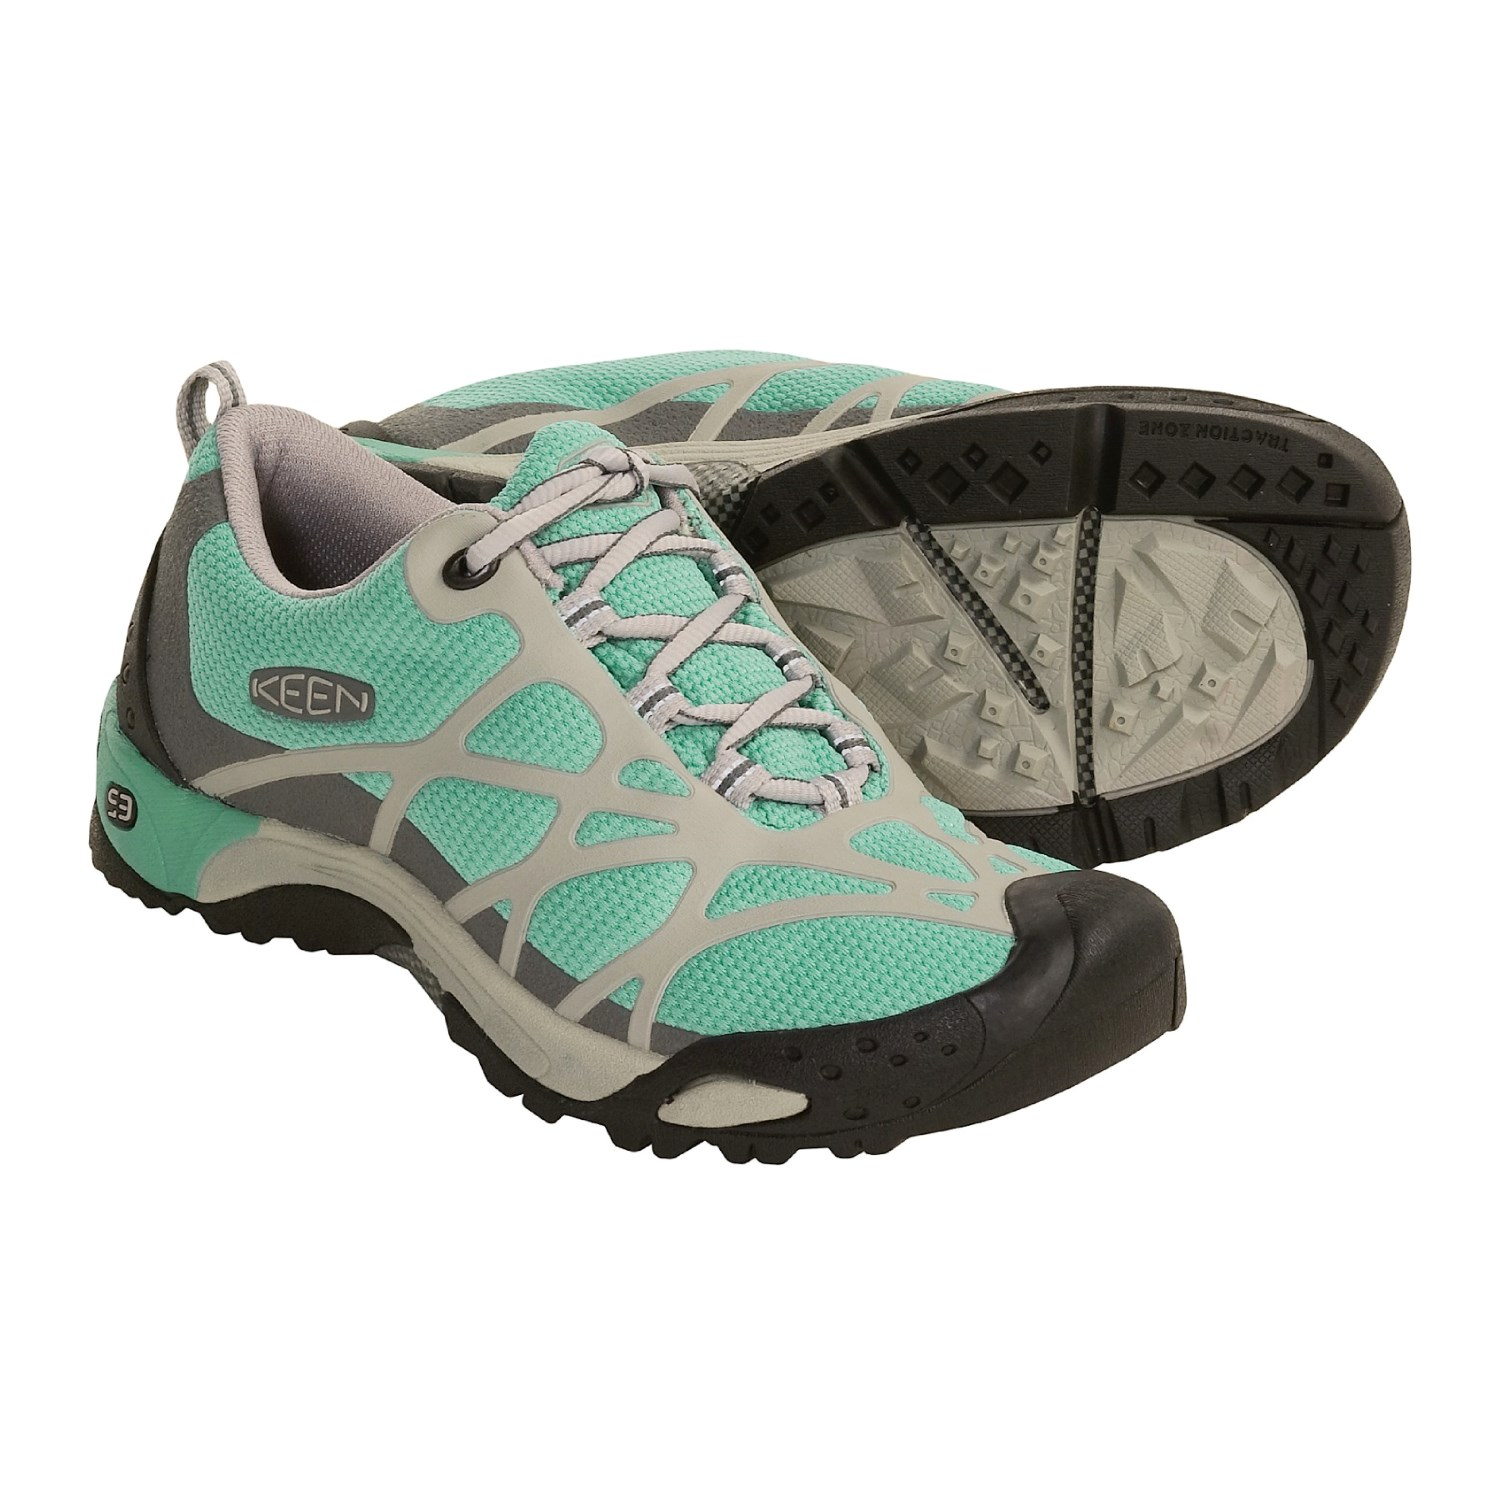 Mar 31,  · Keen: Average savings of 45% at Sierra Trading Post: styles from Keen in Keen Shoes for Men, Keen Shoes for Women, Keen Shoes for Kids, and more at Sierra Trading Post. Day Returns and Customer Service.. Keen Shoes, Sandals, Bags | Zappos Free Shipping ALWAYS: Shop the latest in Keen sandals, shoes and boots.